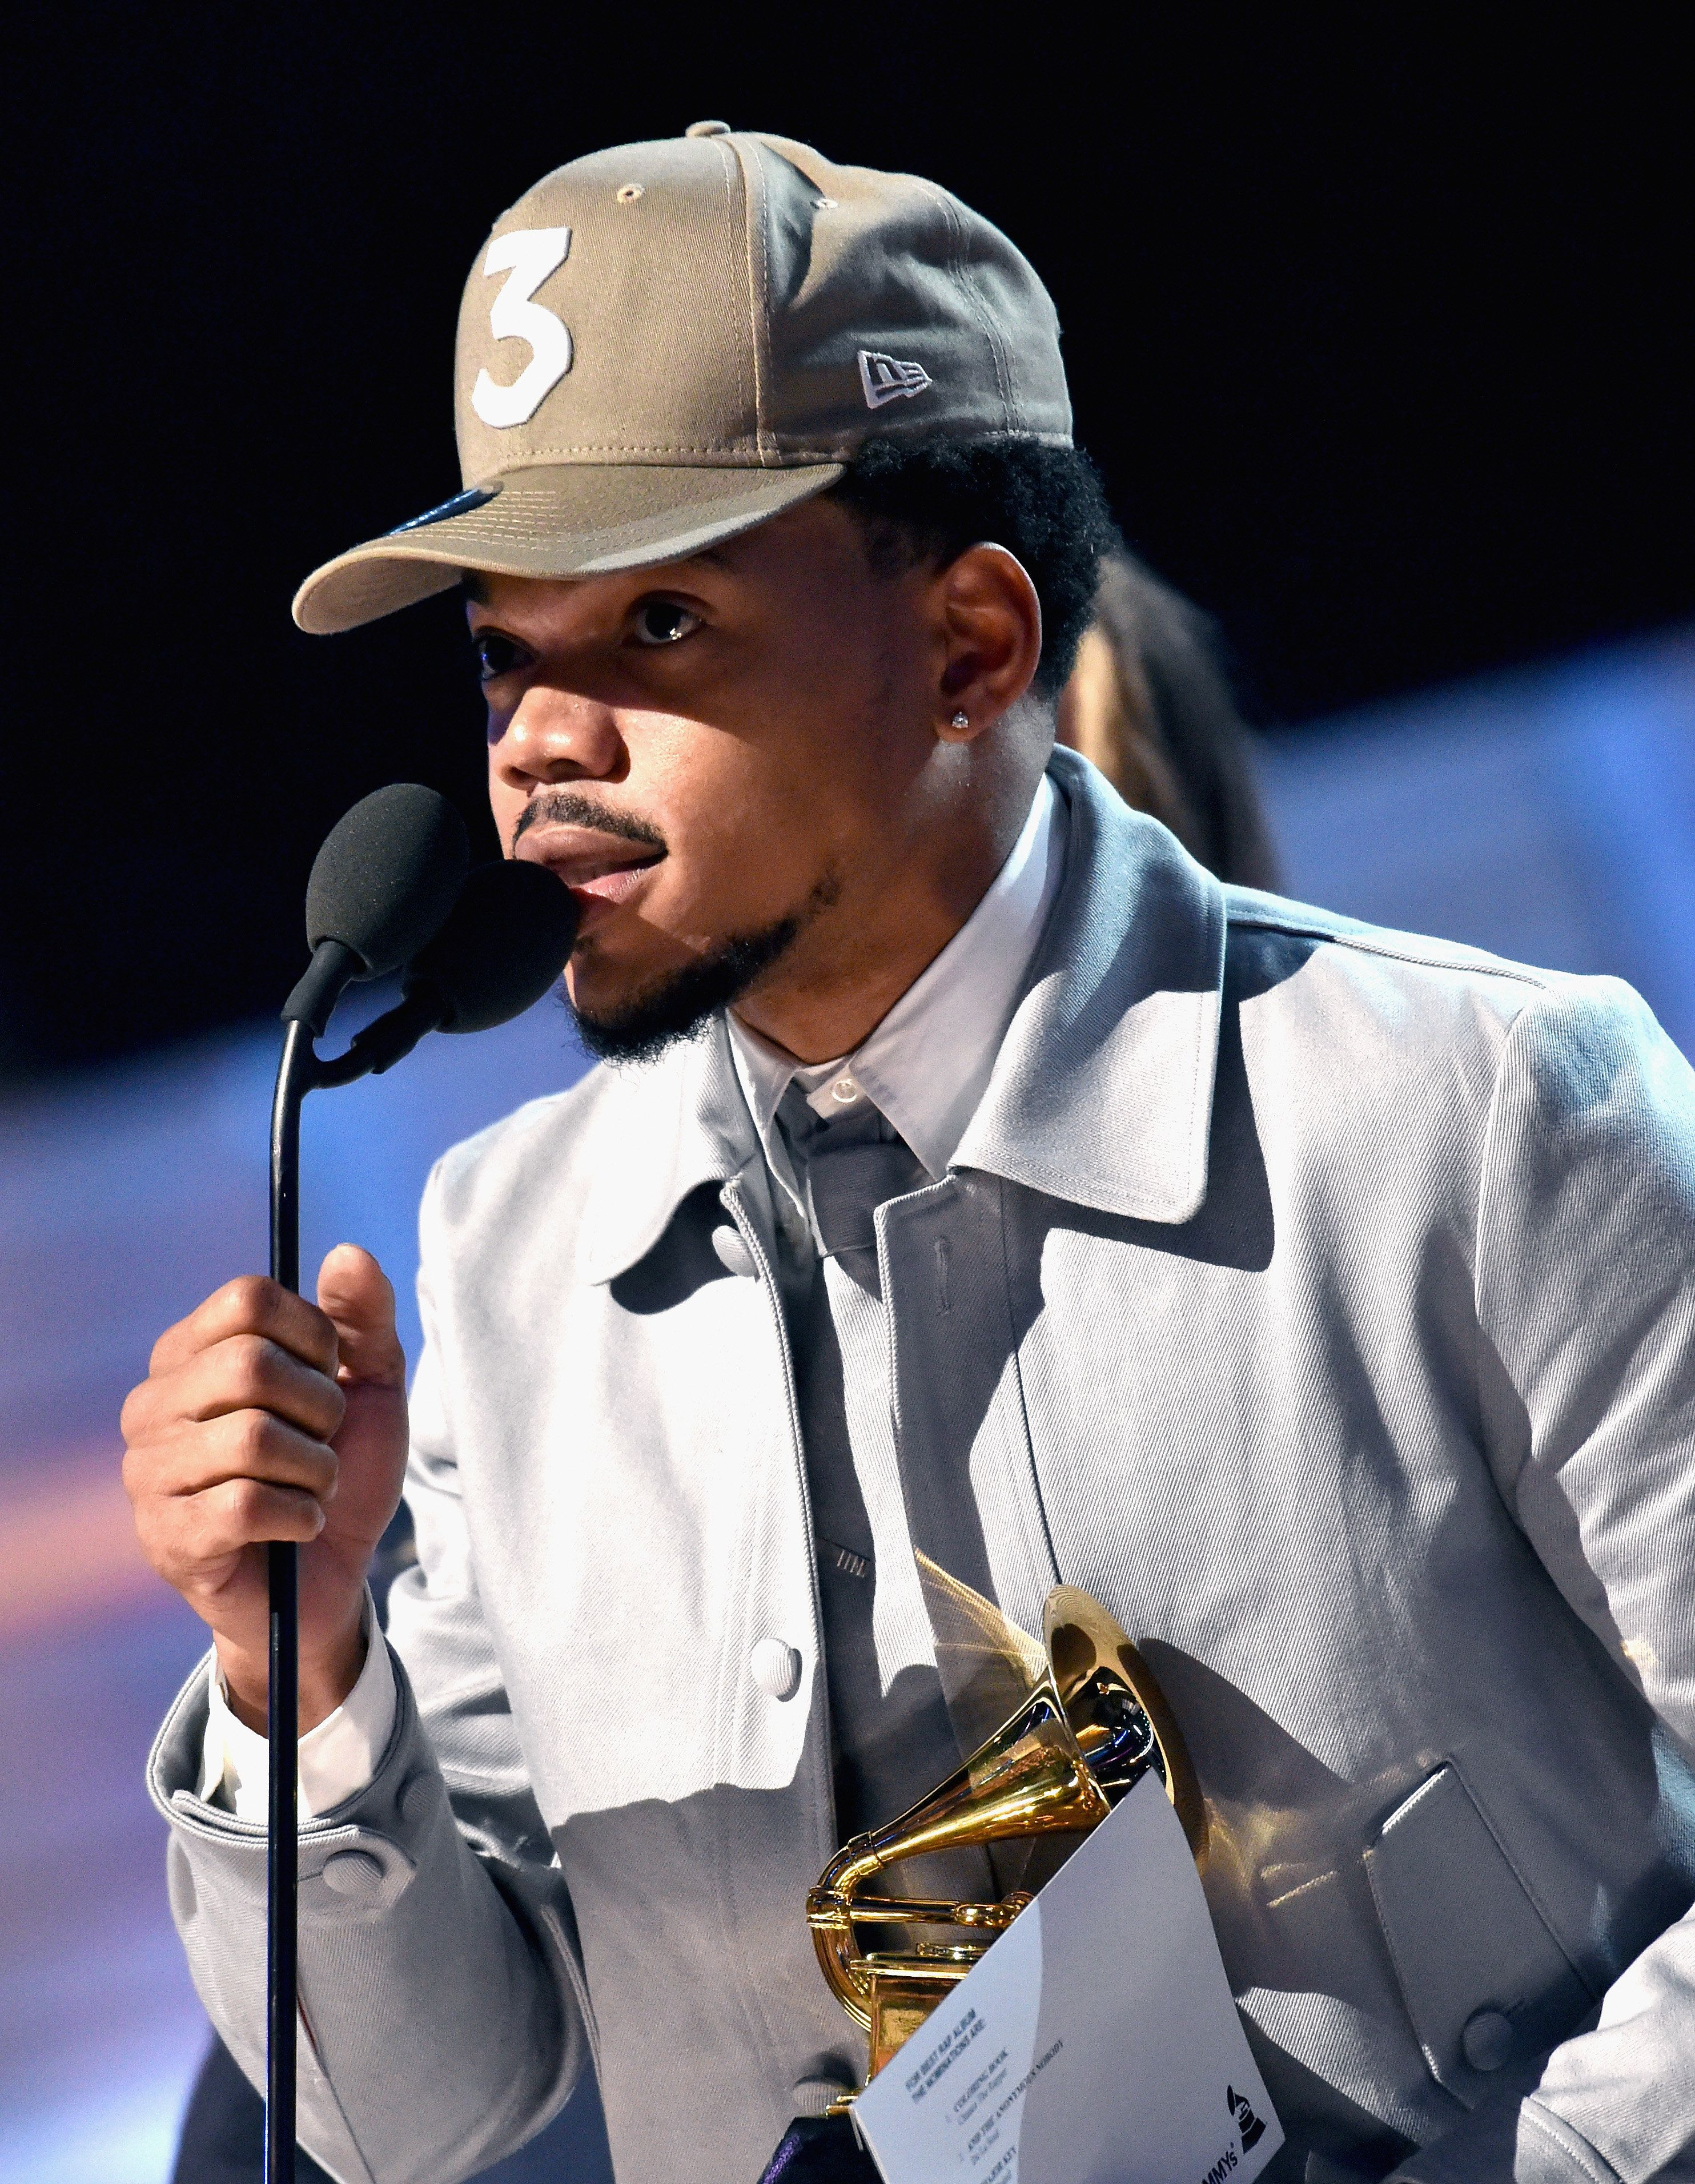 LOS ANGELES, CA - FEBRUARY 12:  Hip-hop artist Chance the Rapper accepts the award for Best New Artist onstage during The 59th GRAMMY Awards at STAPLES Center on February 12, 2017 in Los Angeles, California.  (Photo by Lester Cohen/Getty Images for NARAS)